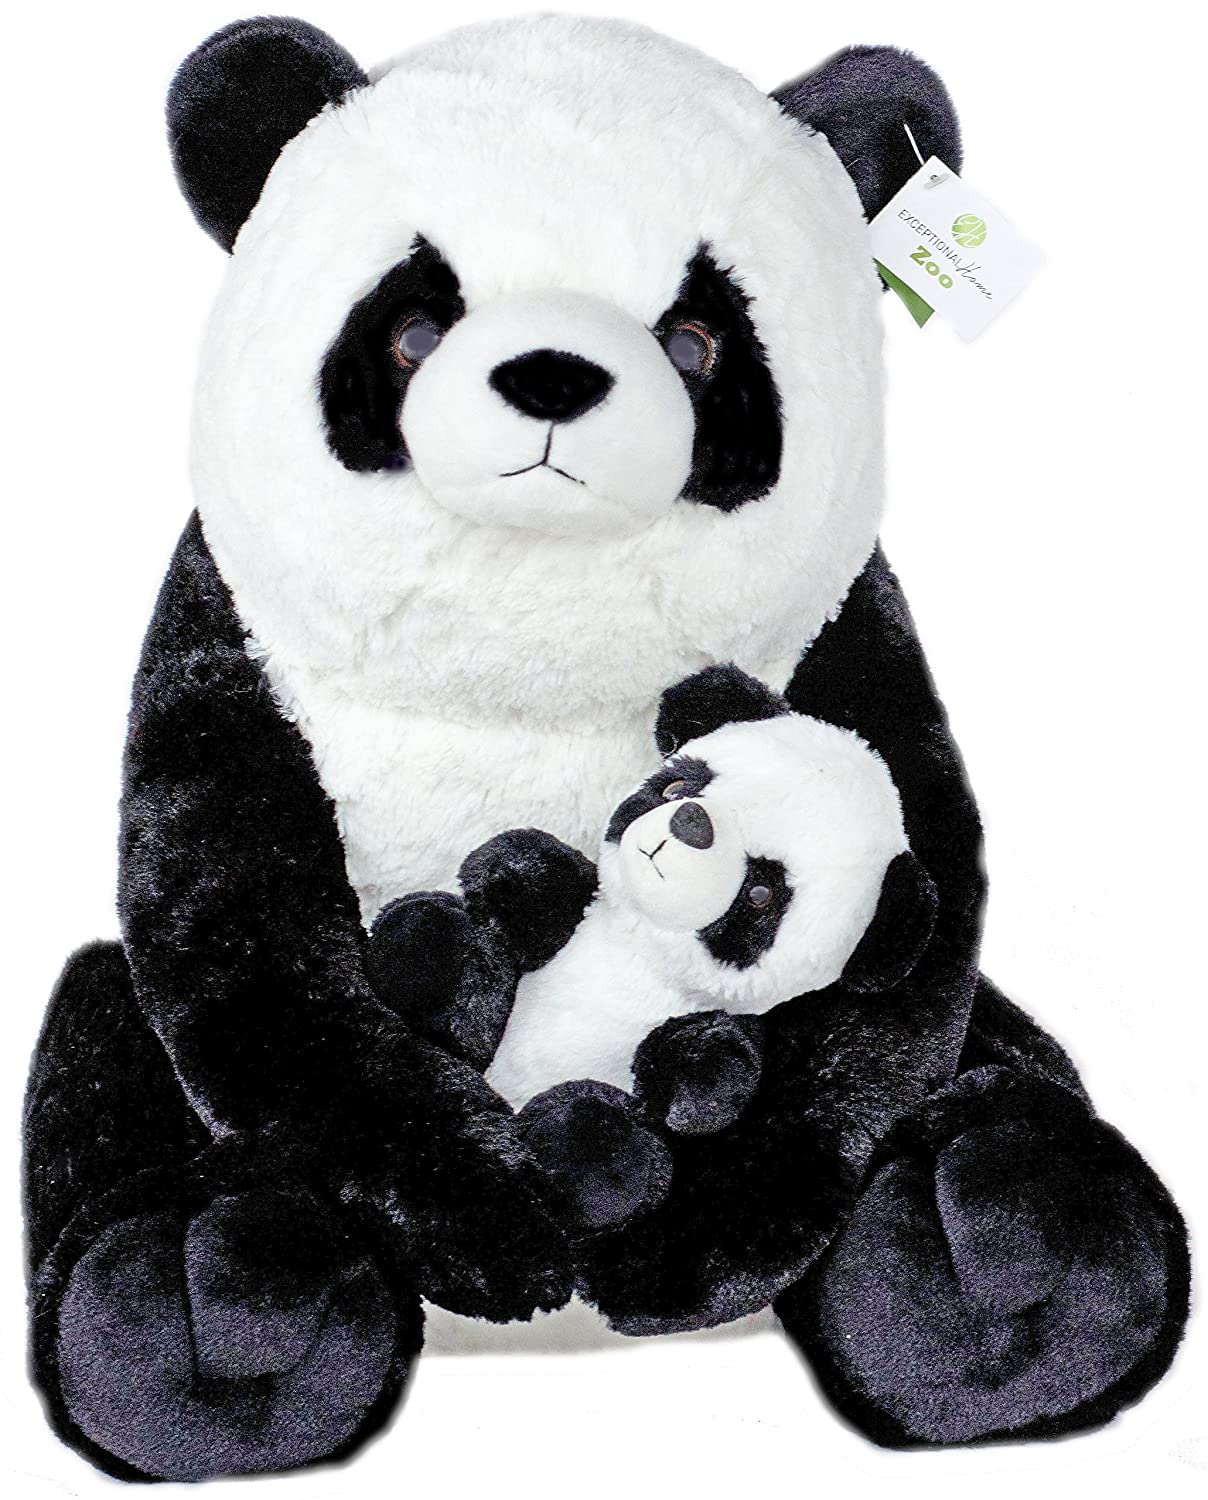 amazoncom exceptional home zoo inch giant panda with baby  - amazoncom exceptional home zoo inch giant panda with baby panda plushtoys toys  games